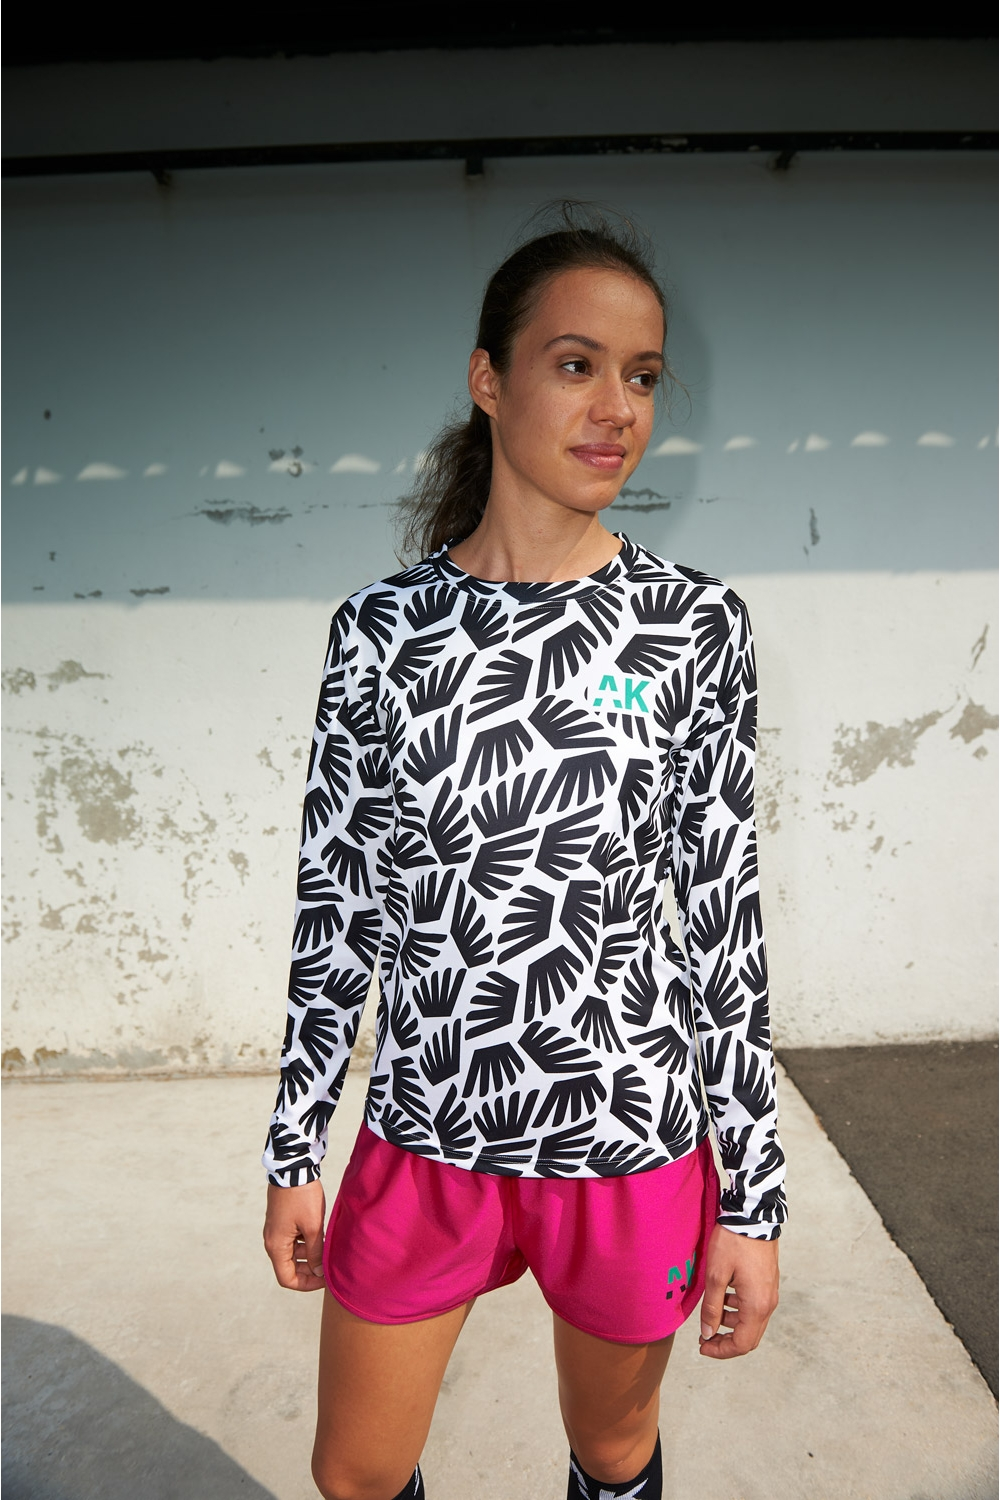 Gigi Winged Jersey - Women's Football - Half-distance front view